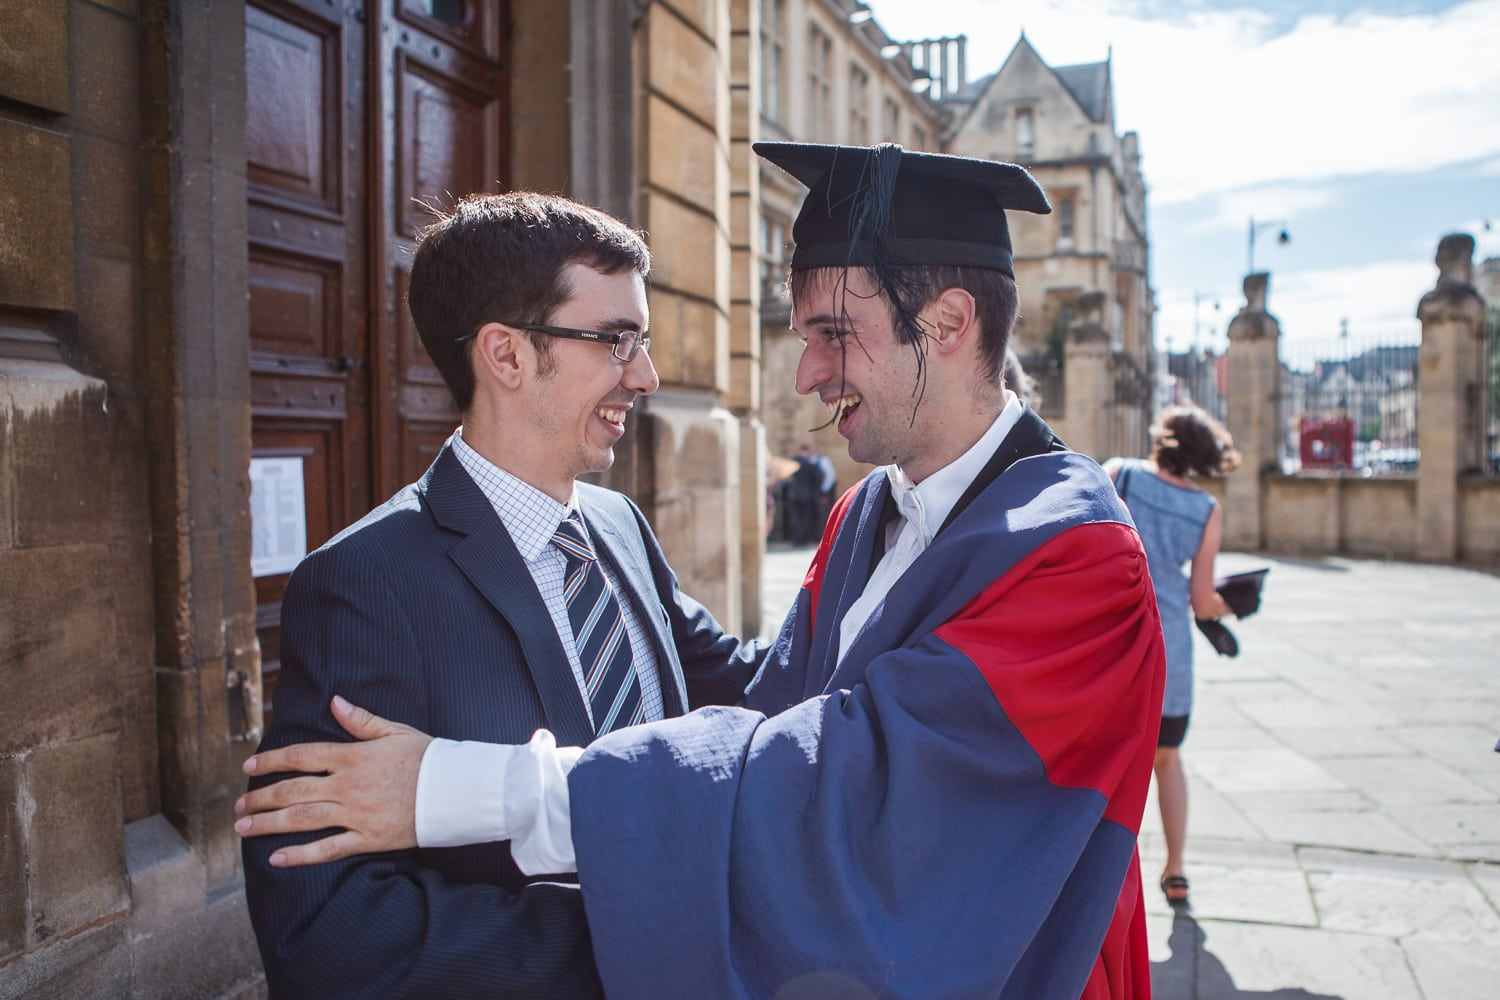 oxford-graduation-photographer-21